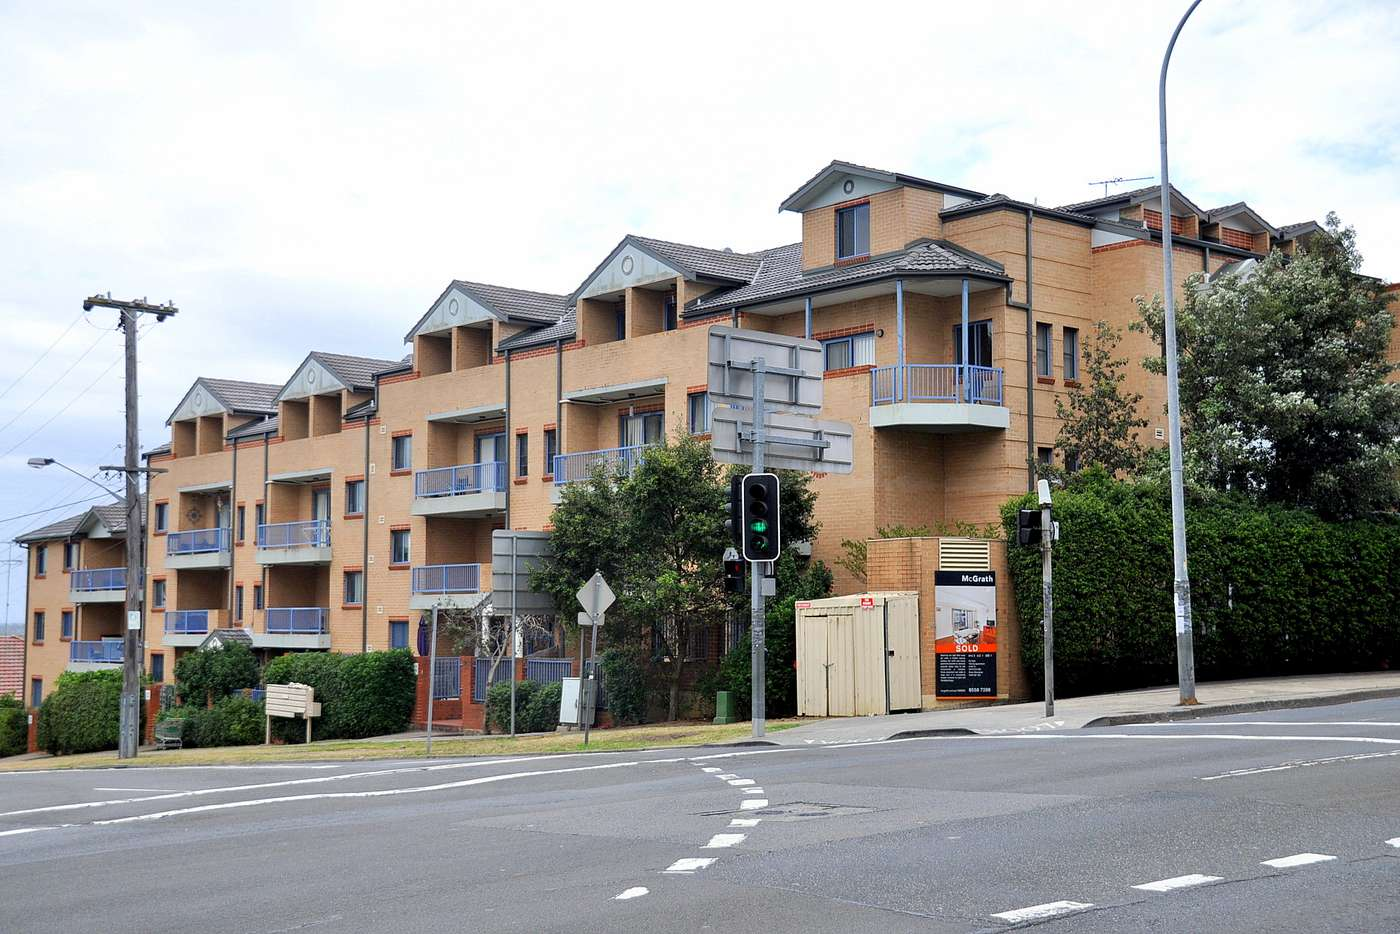 Main view of Homely apartment listing, 32/1 Hillcrest Ave, Hurstville NSW 2220